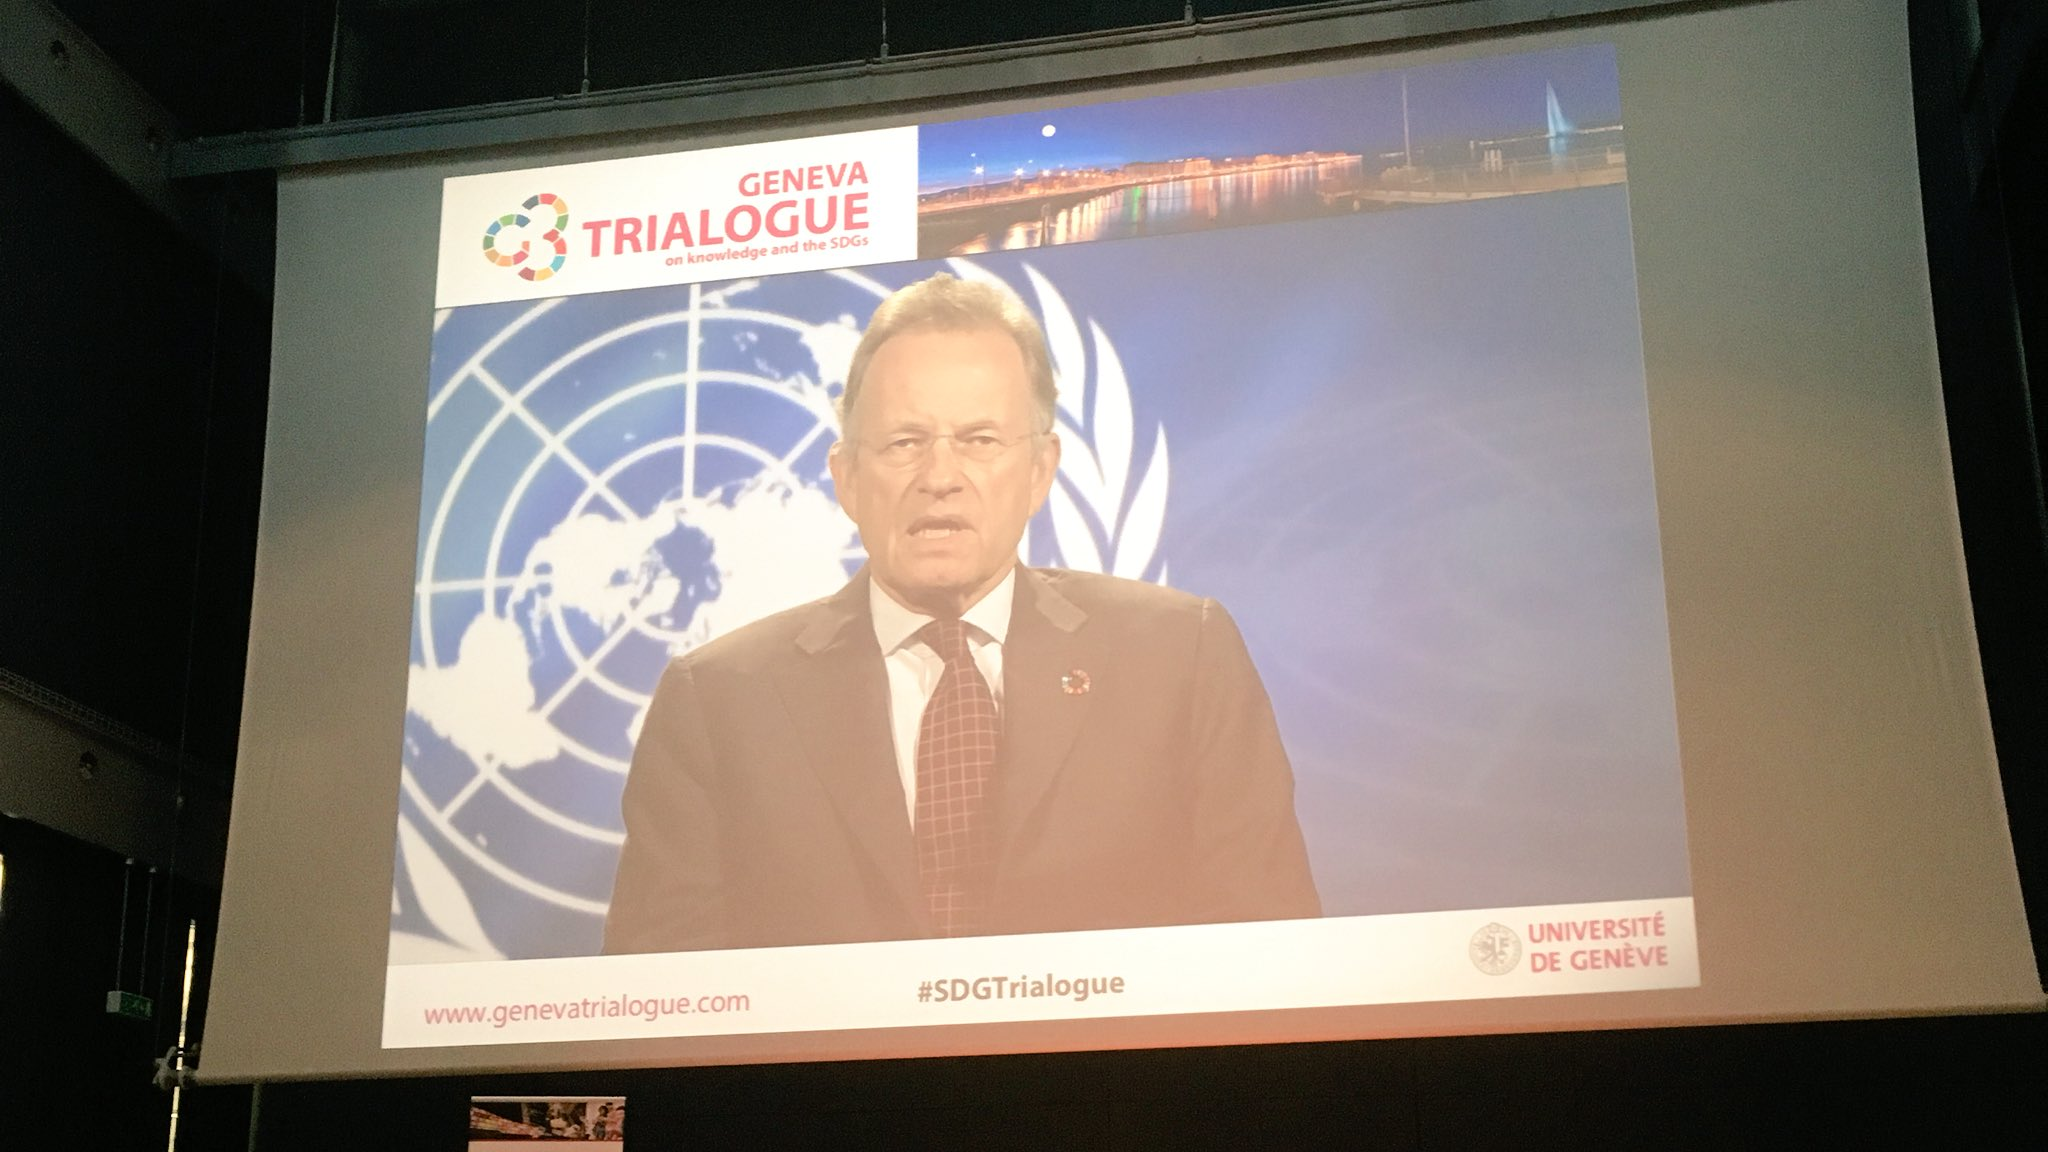 We need some serious coordination - #Partnerships must be more innovative than ever before @UNOG_DG #SDGTrialogue @GenevaImpact https://t.co/xRBPg3nfpS